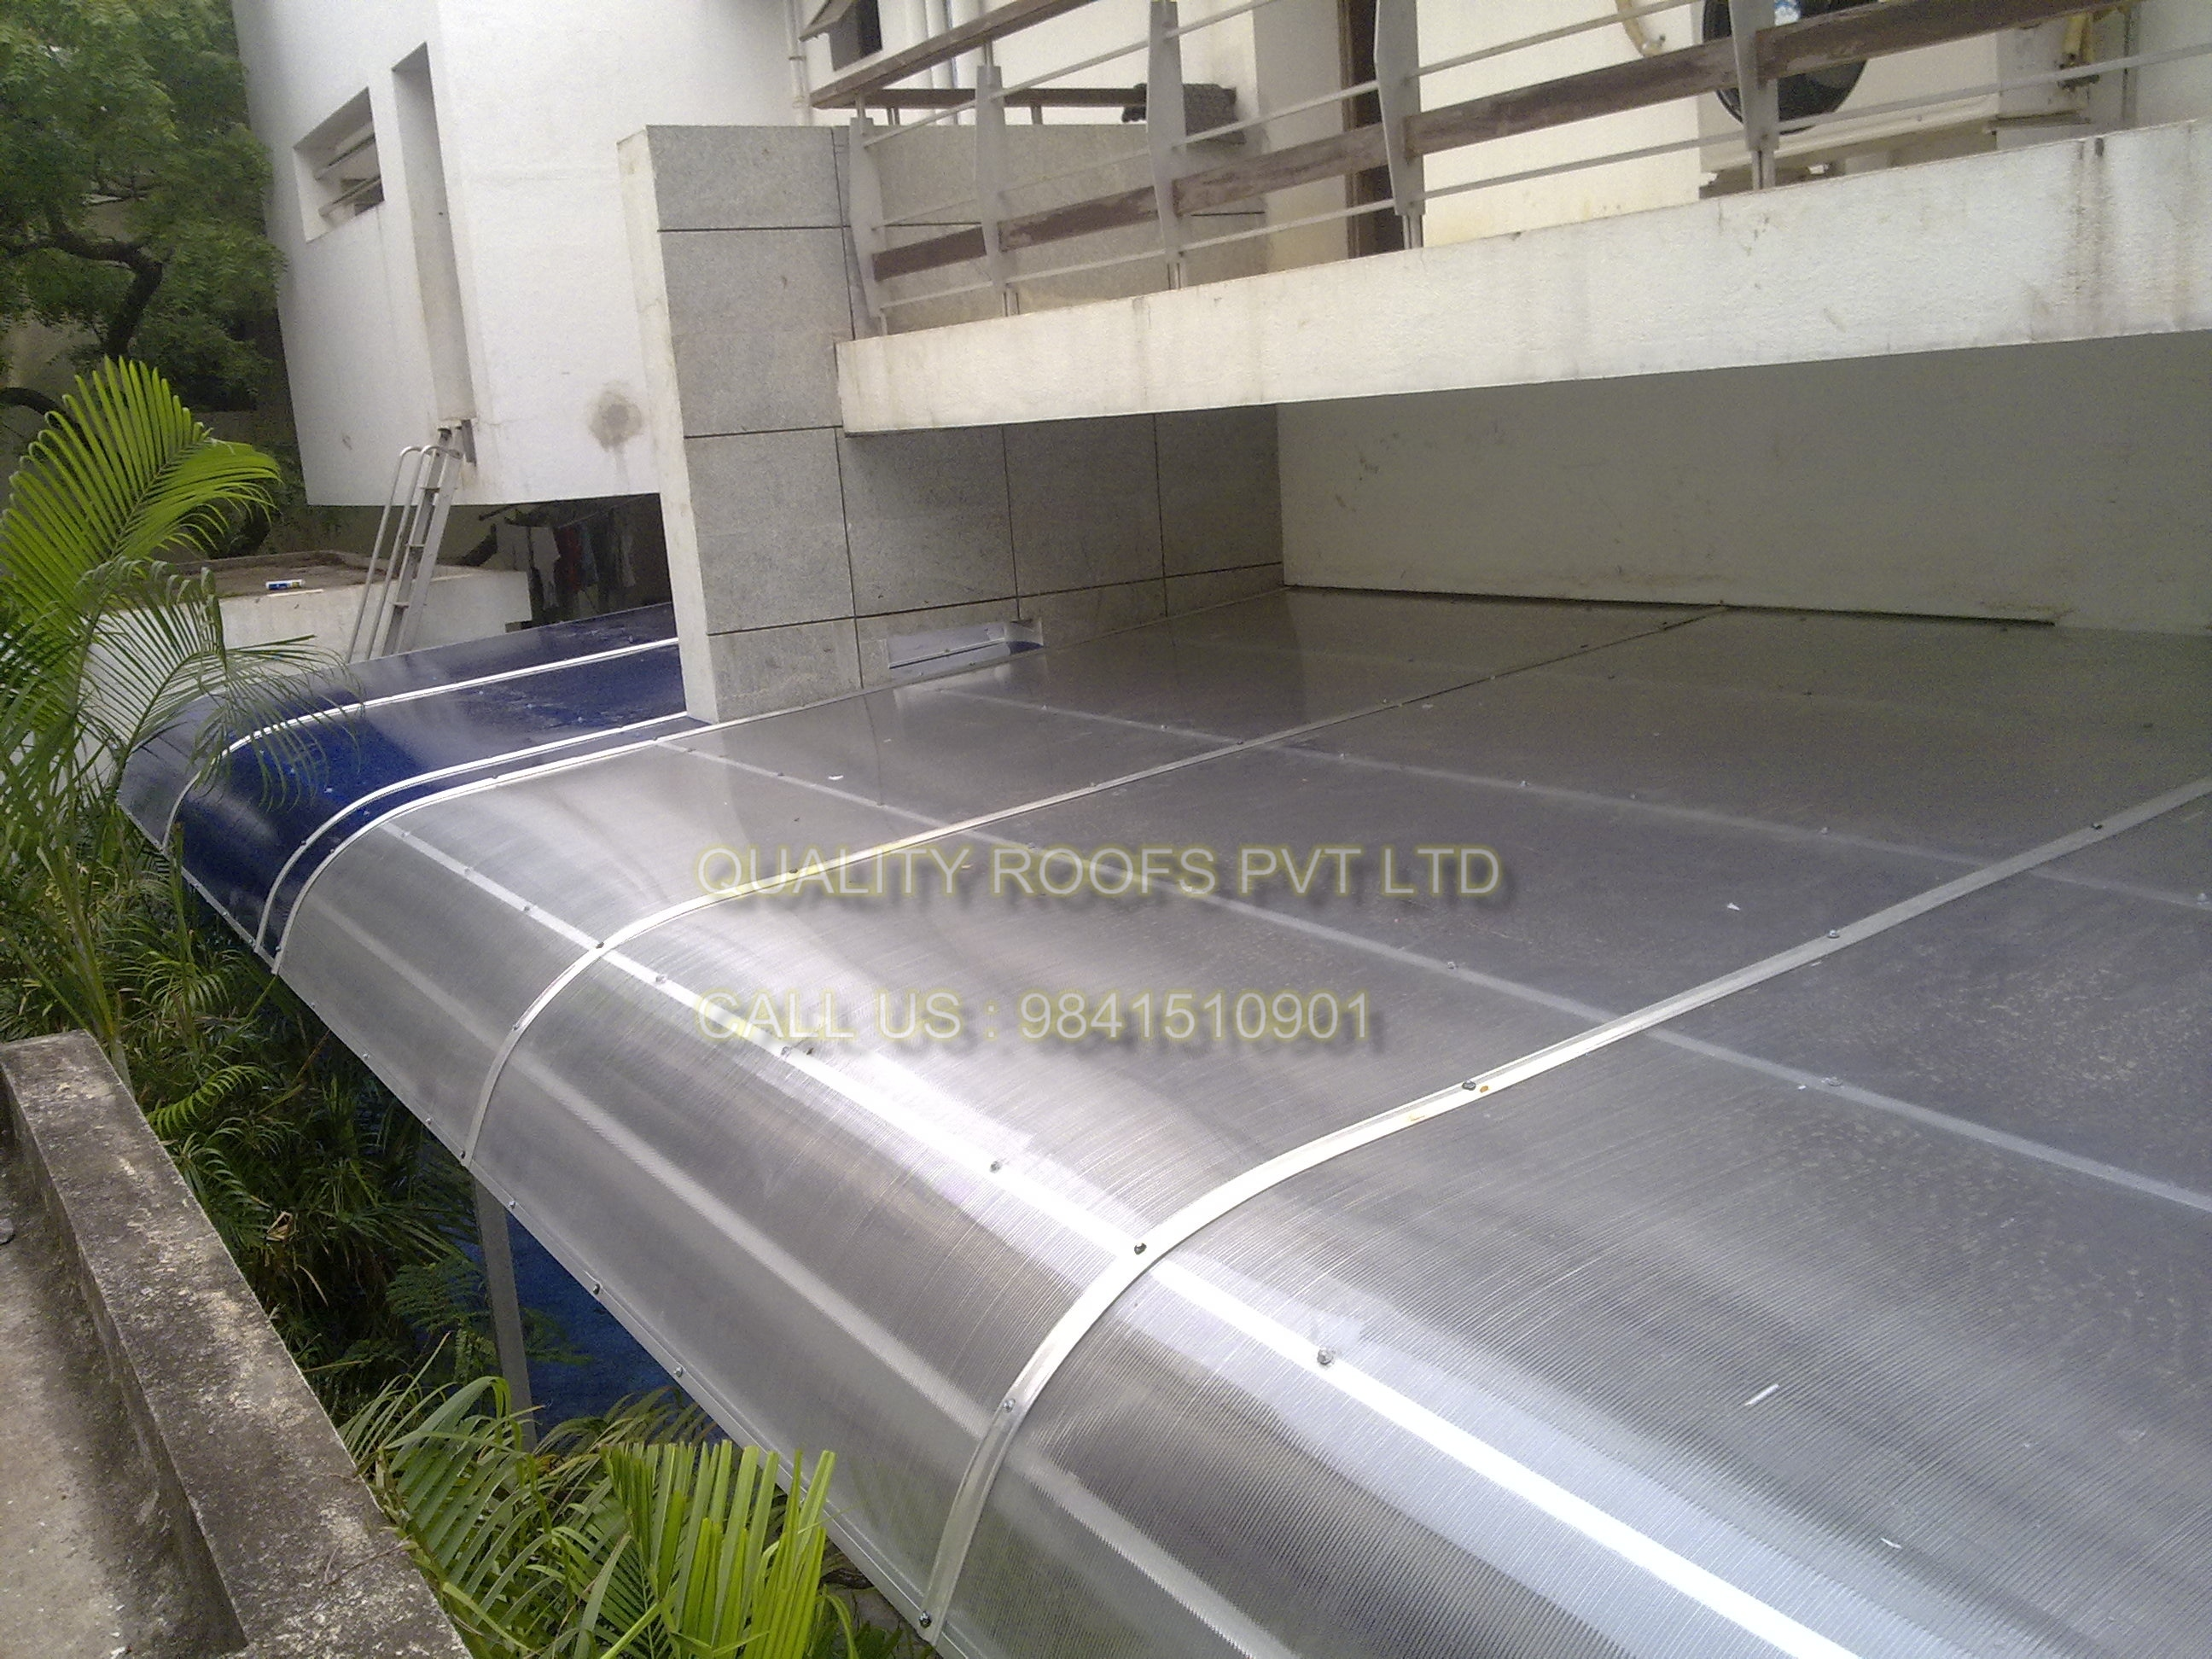 Polycarbonate Roofing Contractors In Chennai   We are the best Polycarbonate Roofing Contractors In Chennai. One can also store goods under its shade that need to be outdoors but protected from the damages of hostile weather conditions. We offer the latest in design and the ultimate in protection you will immediately realize the difference.  we are the top most Roofing Services In Chennai. we are the best Puf Panel Roofing In Chennai.